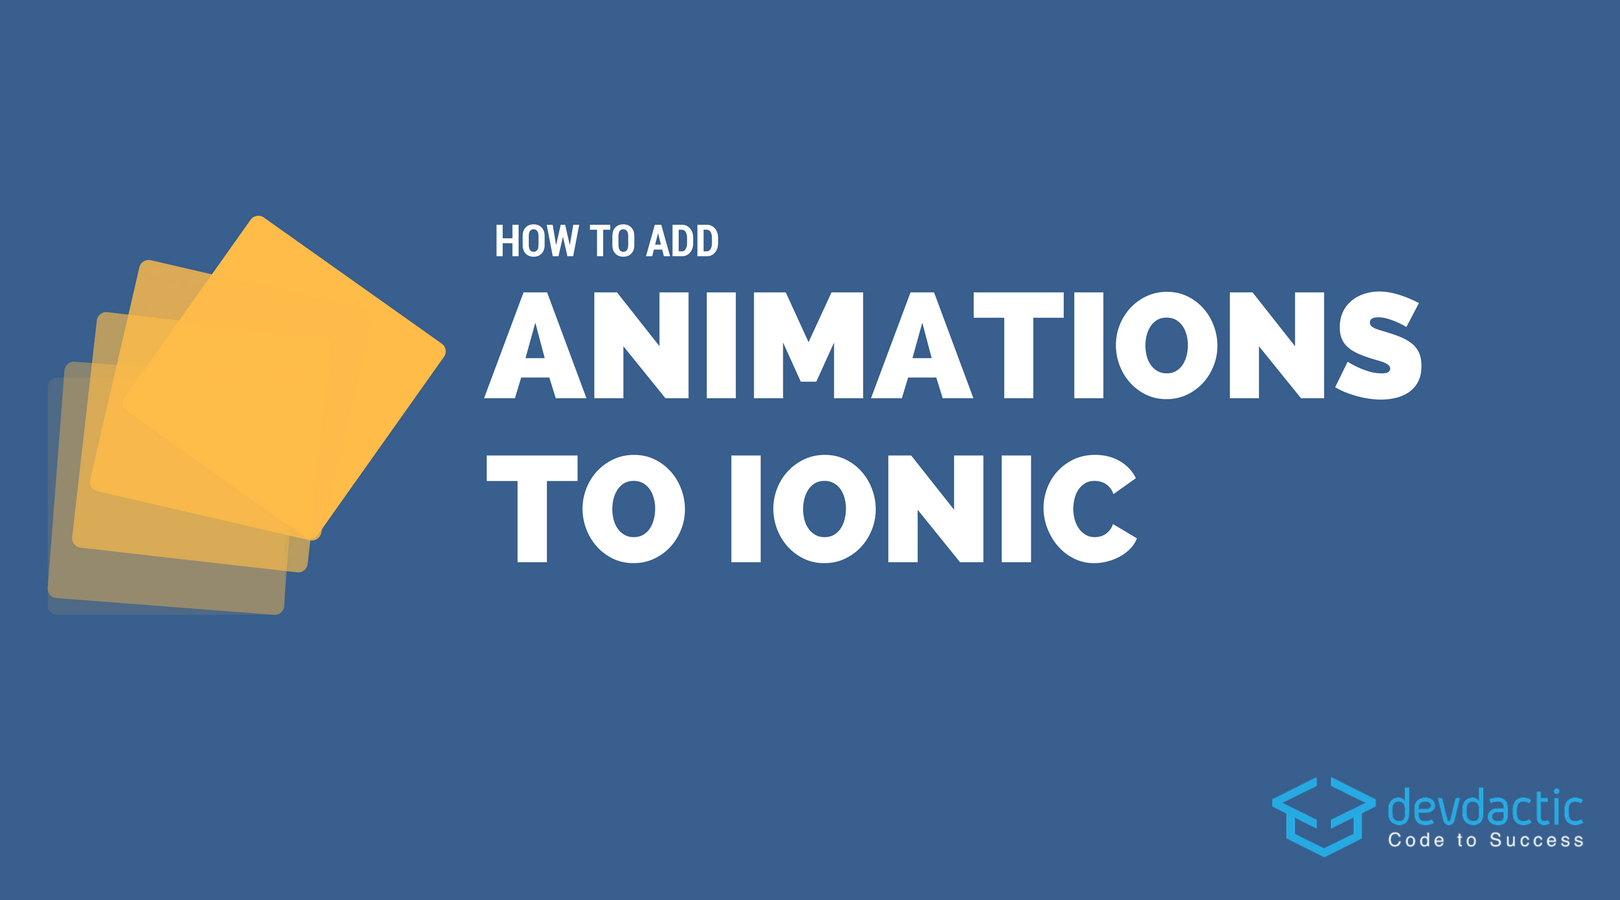 How to Add Ionic Animations Using Angular (2 Different Ways